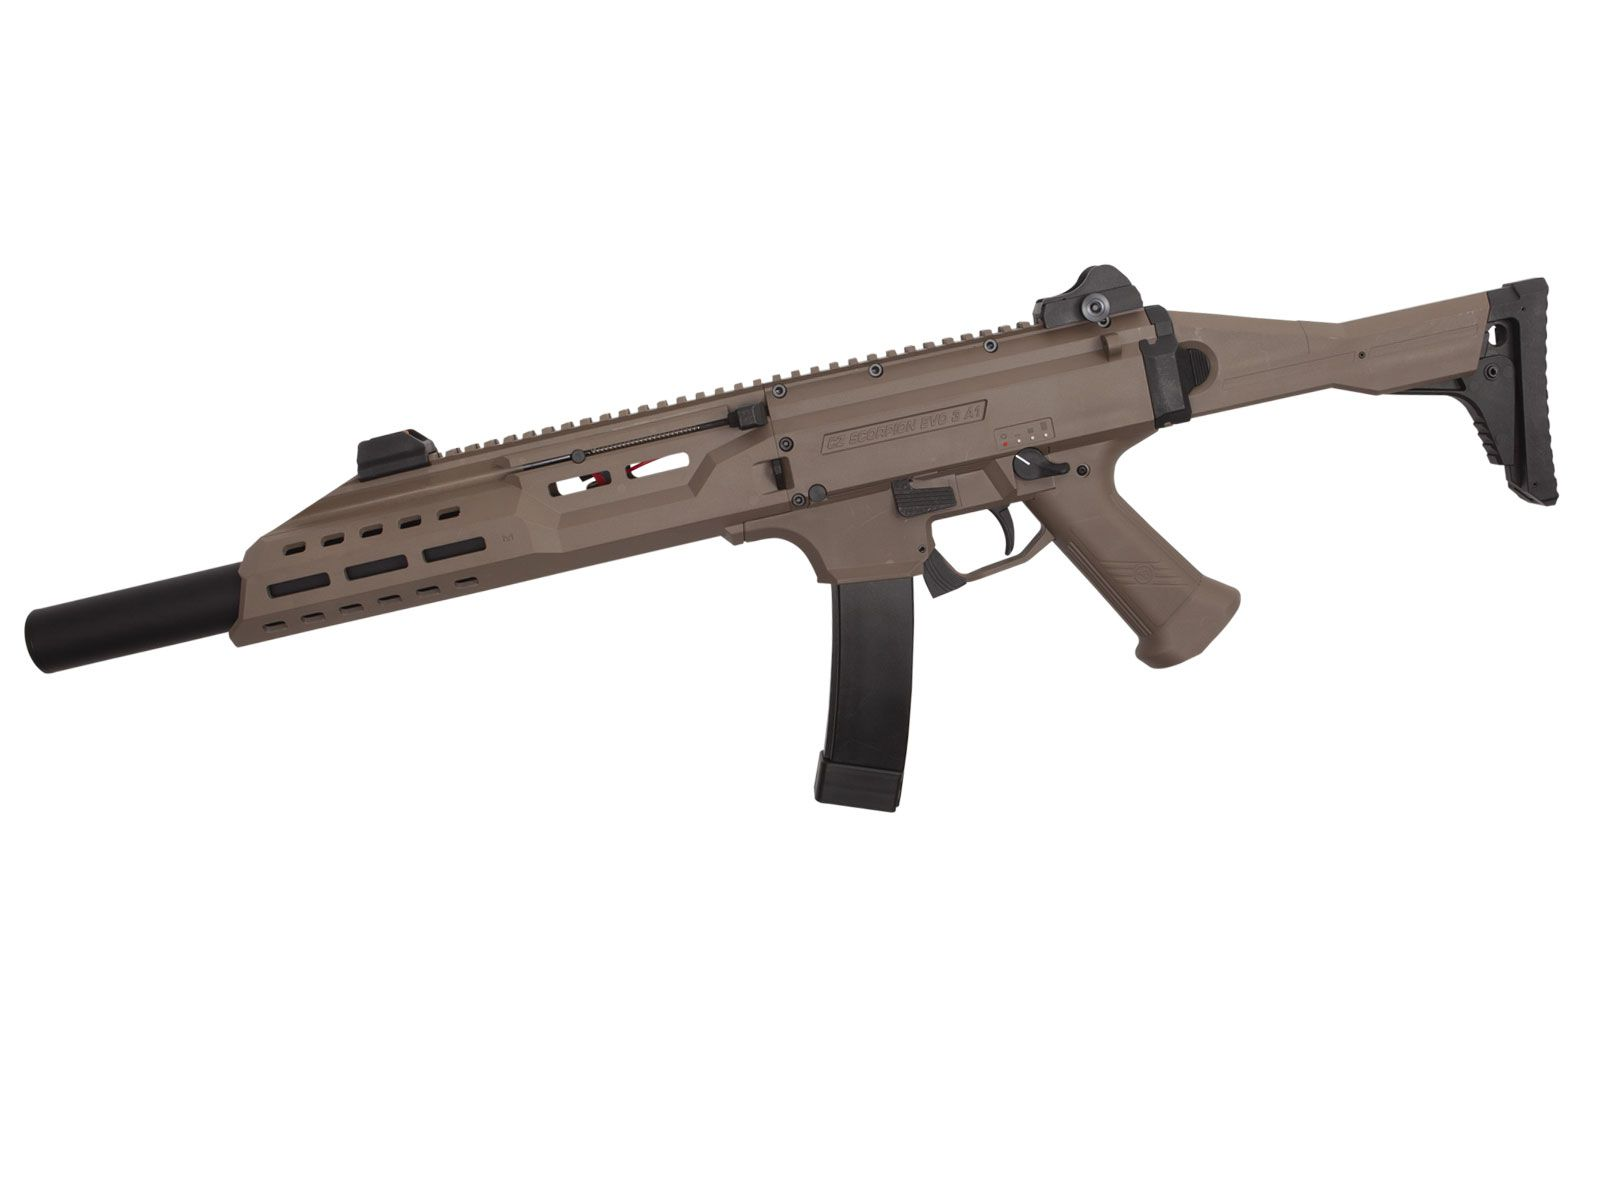 REPLIQUE AIRSOFT AEG CZ SCORPION EVO 3A1 B.E.T - ASG